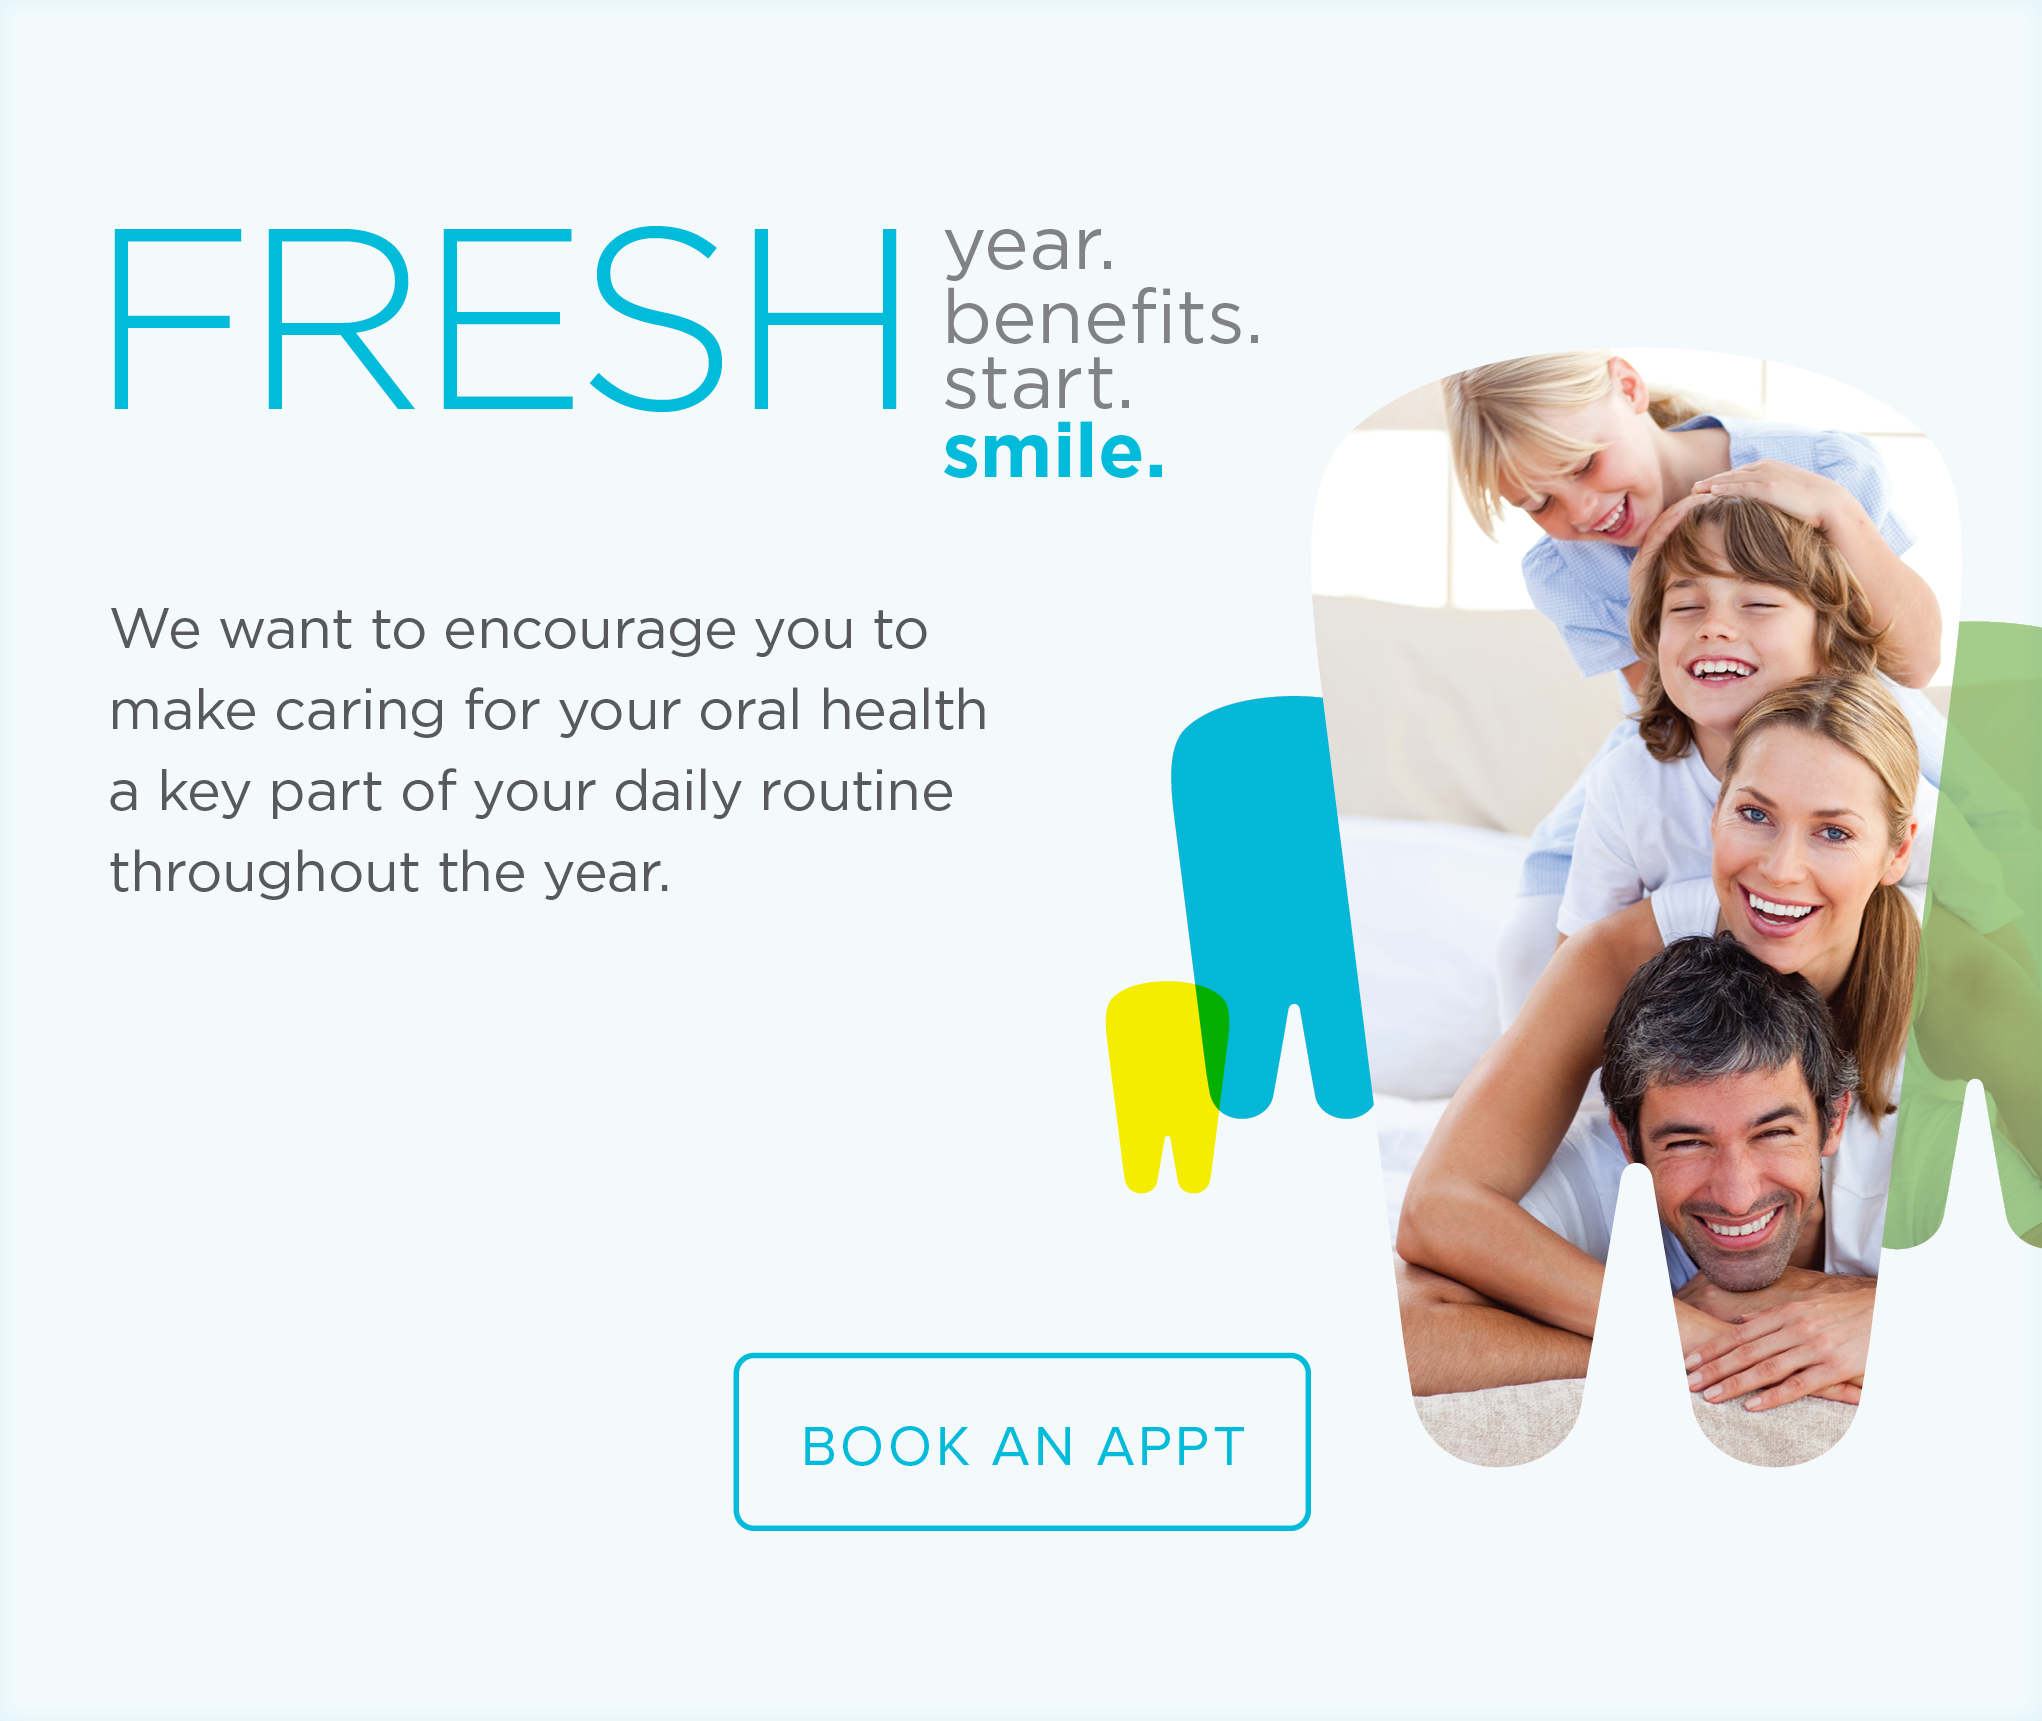 Doctor Phillips  Modern Dentistry - Make the Most of Your Benefits